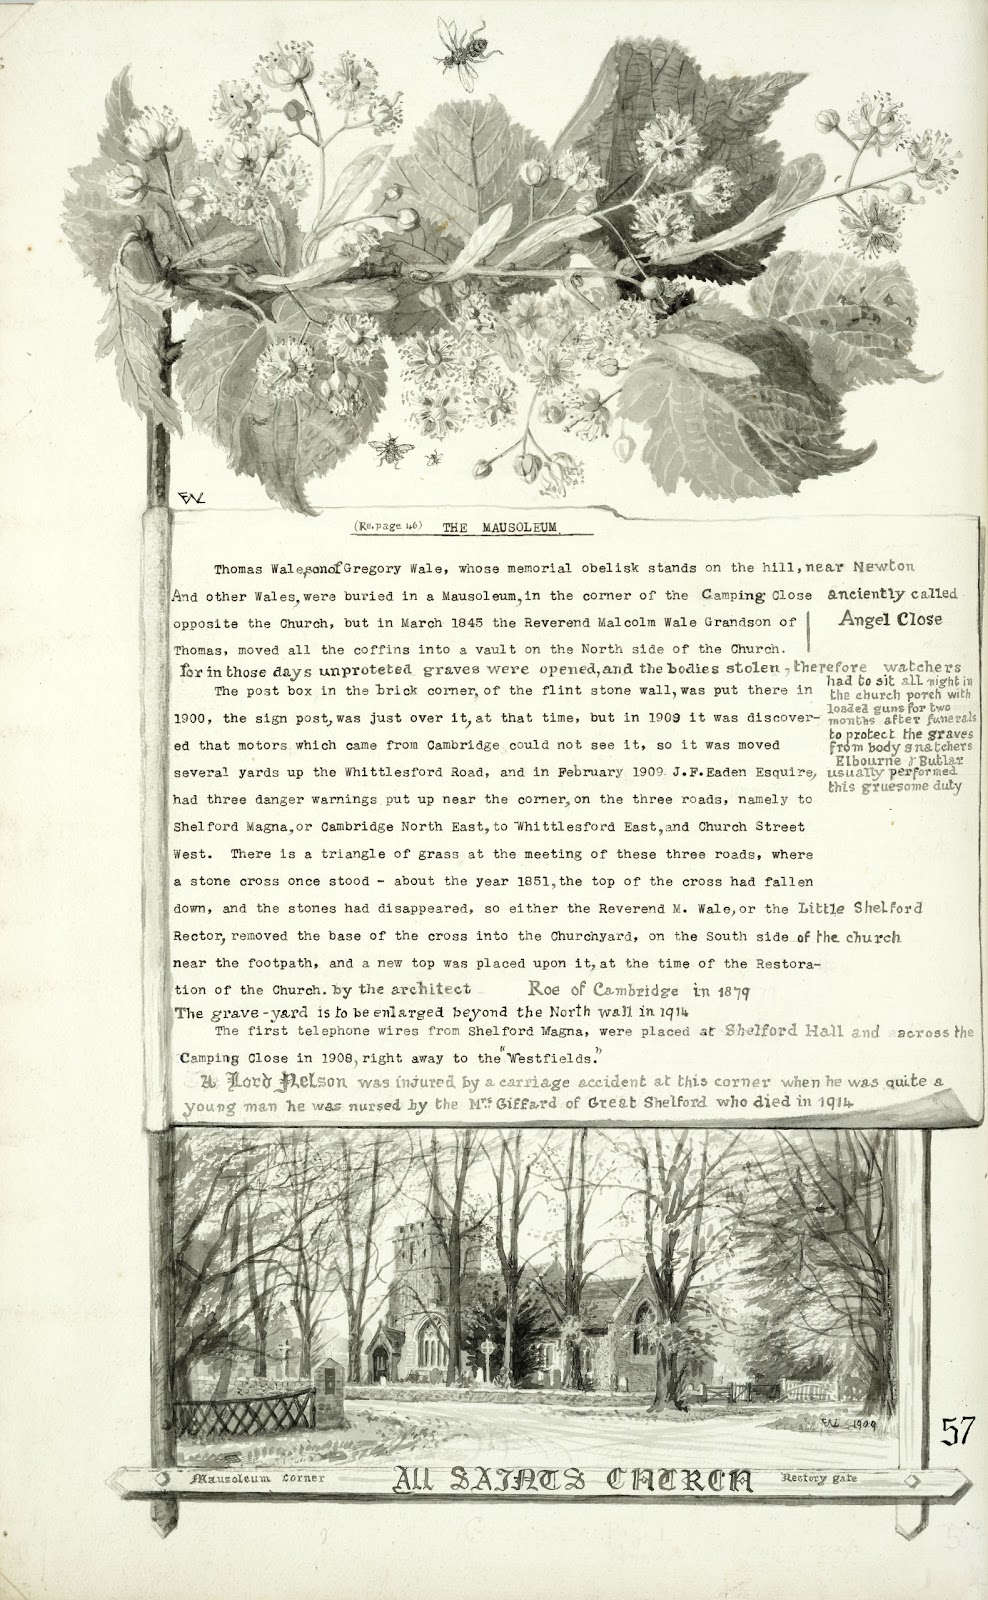 A Record of Shelford Parva by Fanny Wale P57 (NB There are two P57 - this is the second) fo. 58v, [back of] page 57: At the top of the page is a large watercolour of leaves and flowers. Below there is a description of the Mausoleum, the dangerous road junction and stone cross and below is a watercolour of All Saints Church, and 'Mausoleum Corner', 1909.  [fo.48]